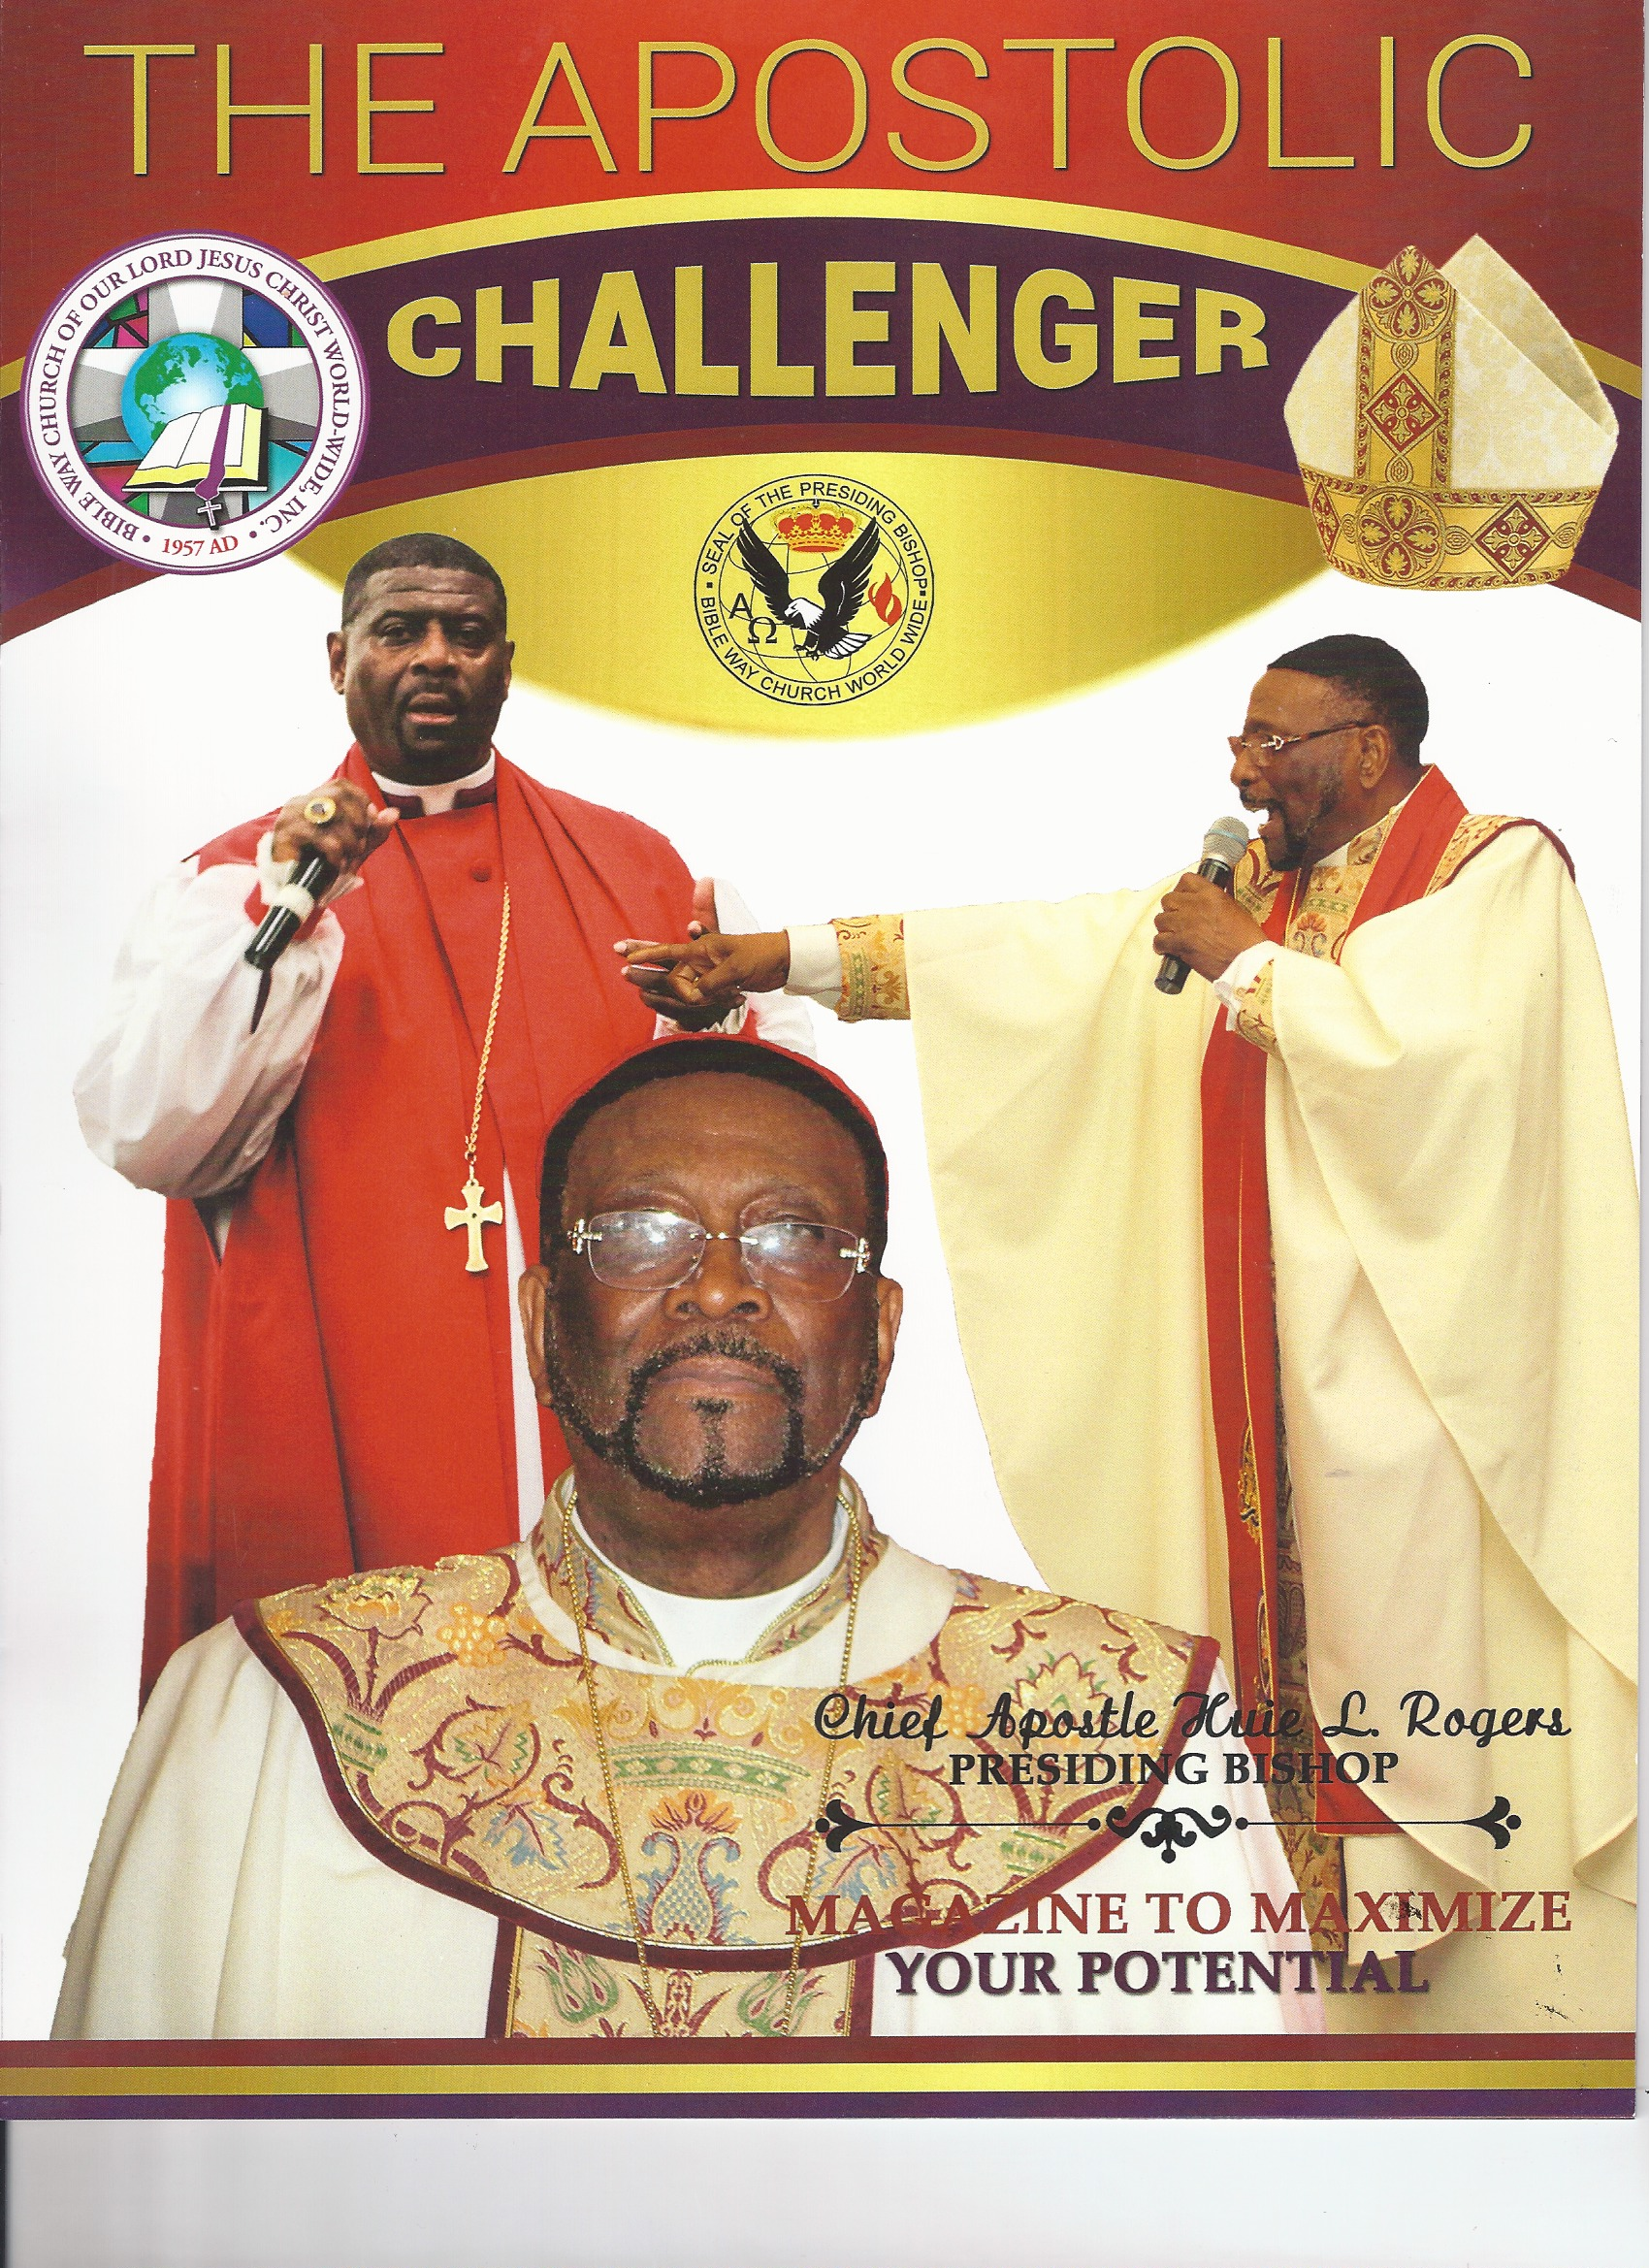 The Apostolic Challenger